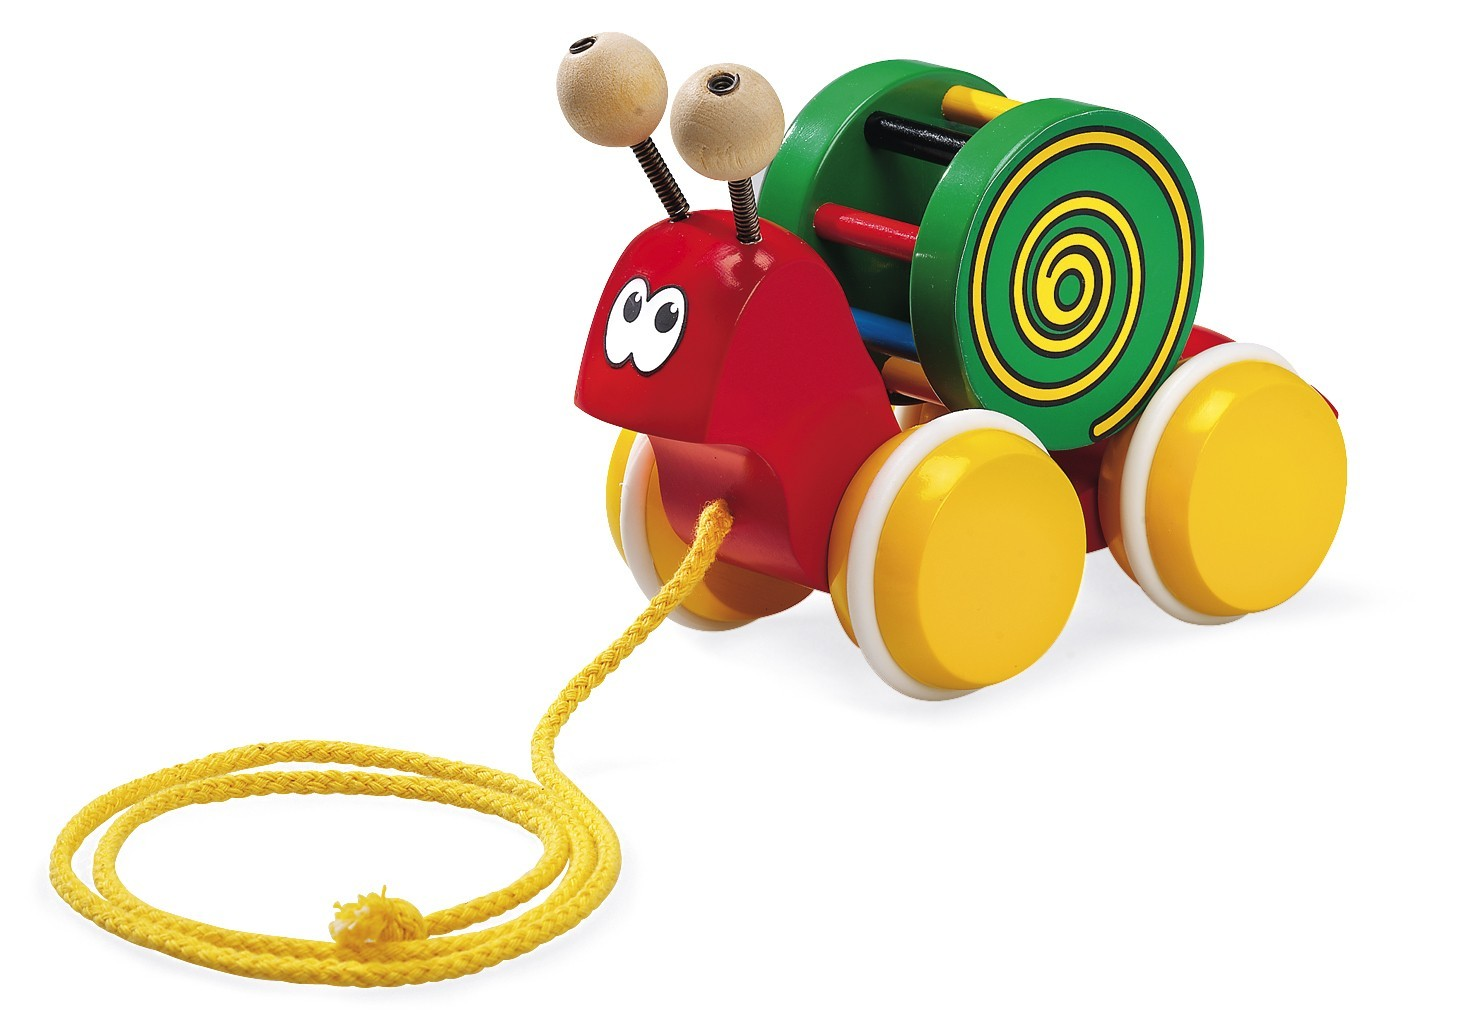 Picture of Recalled Snail Toy